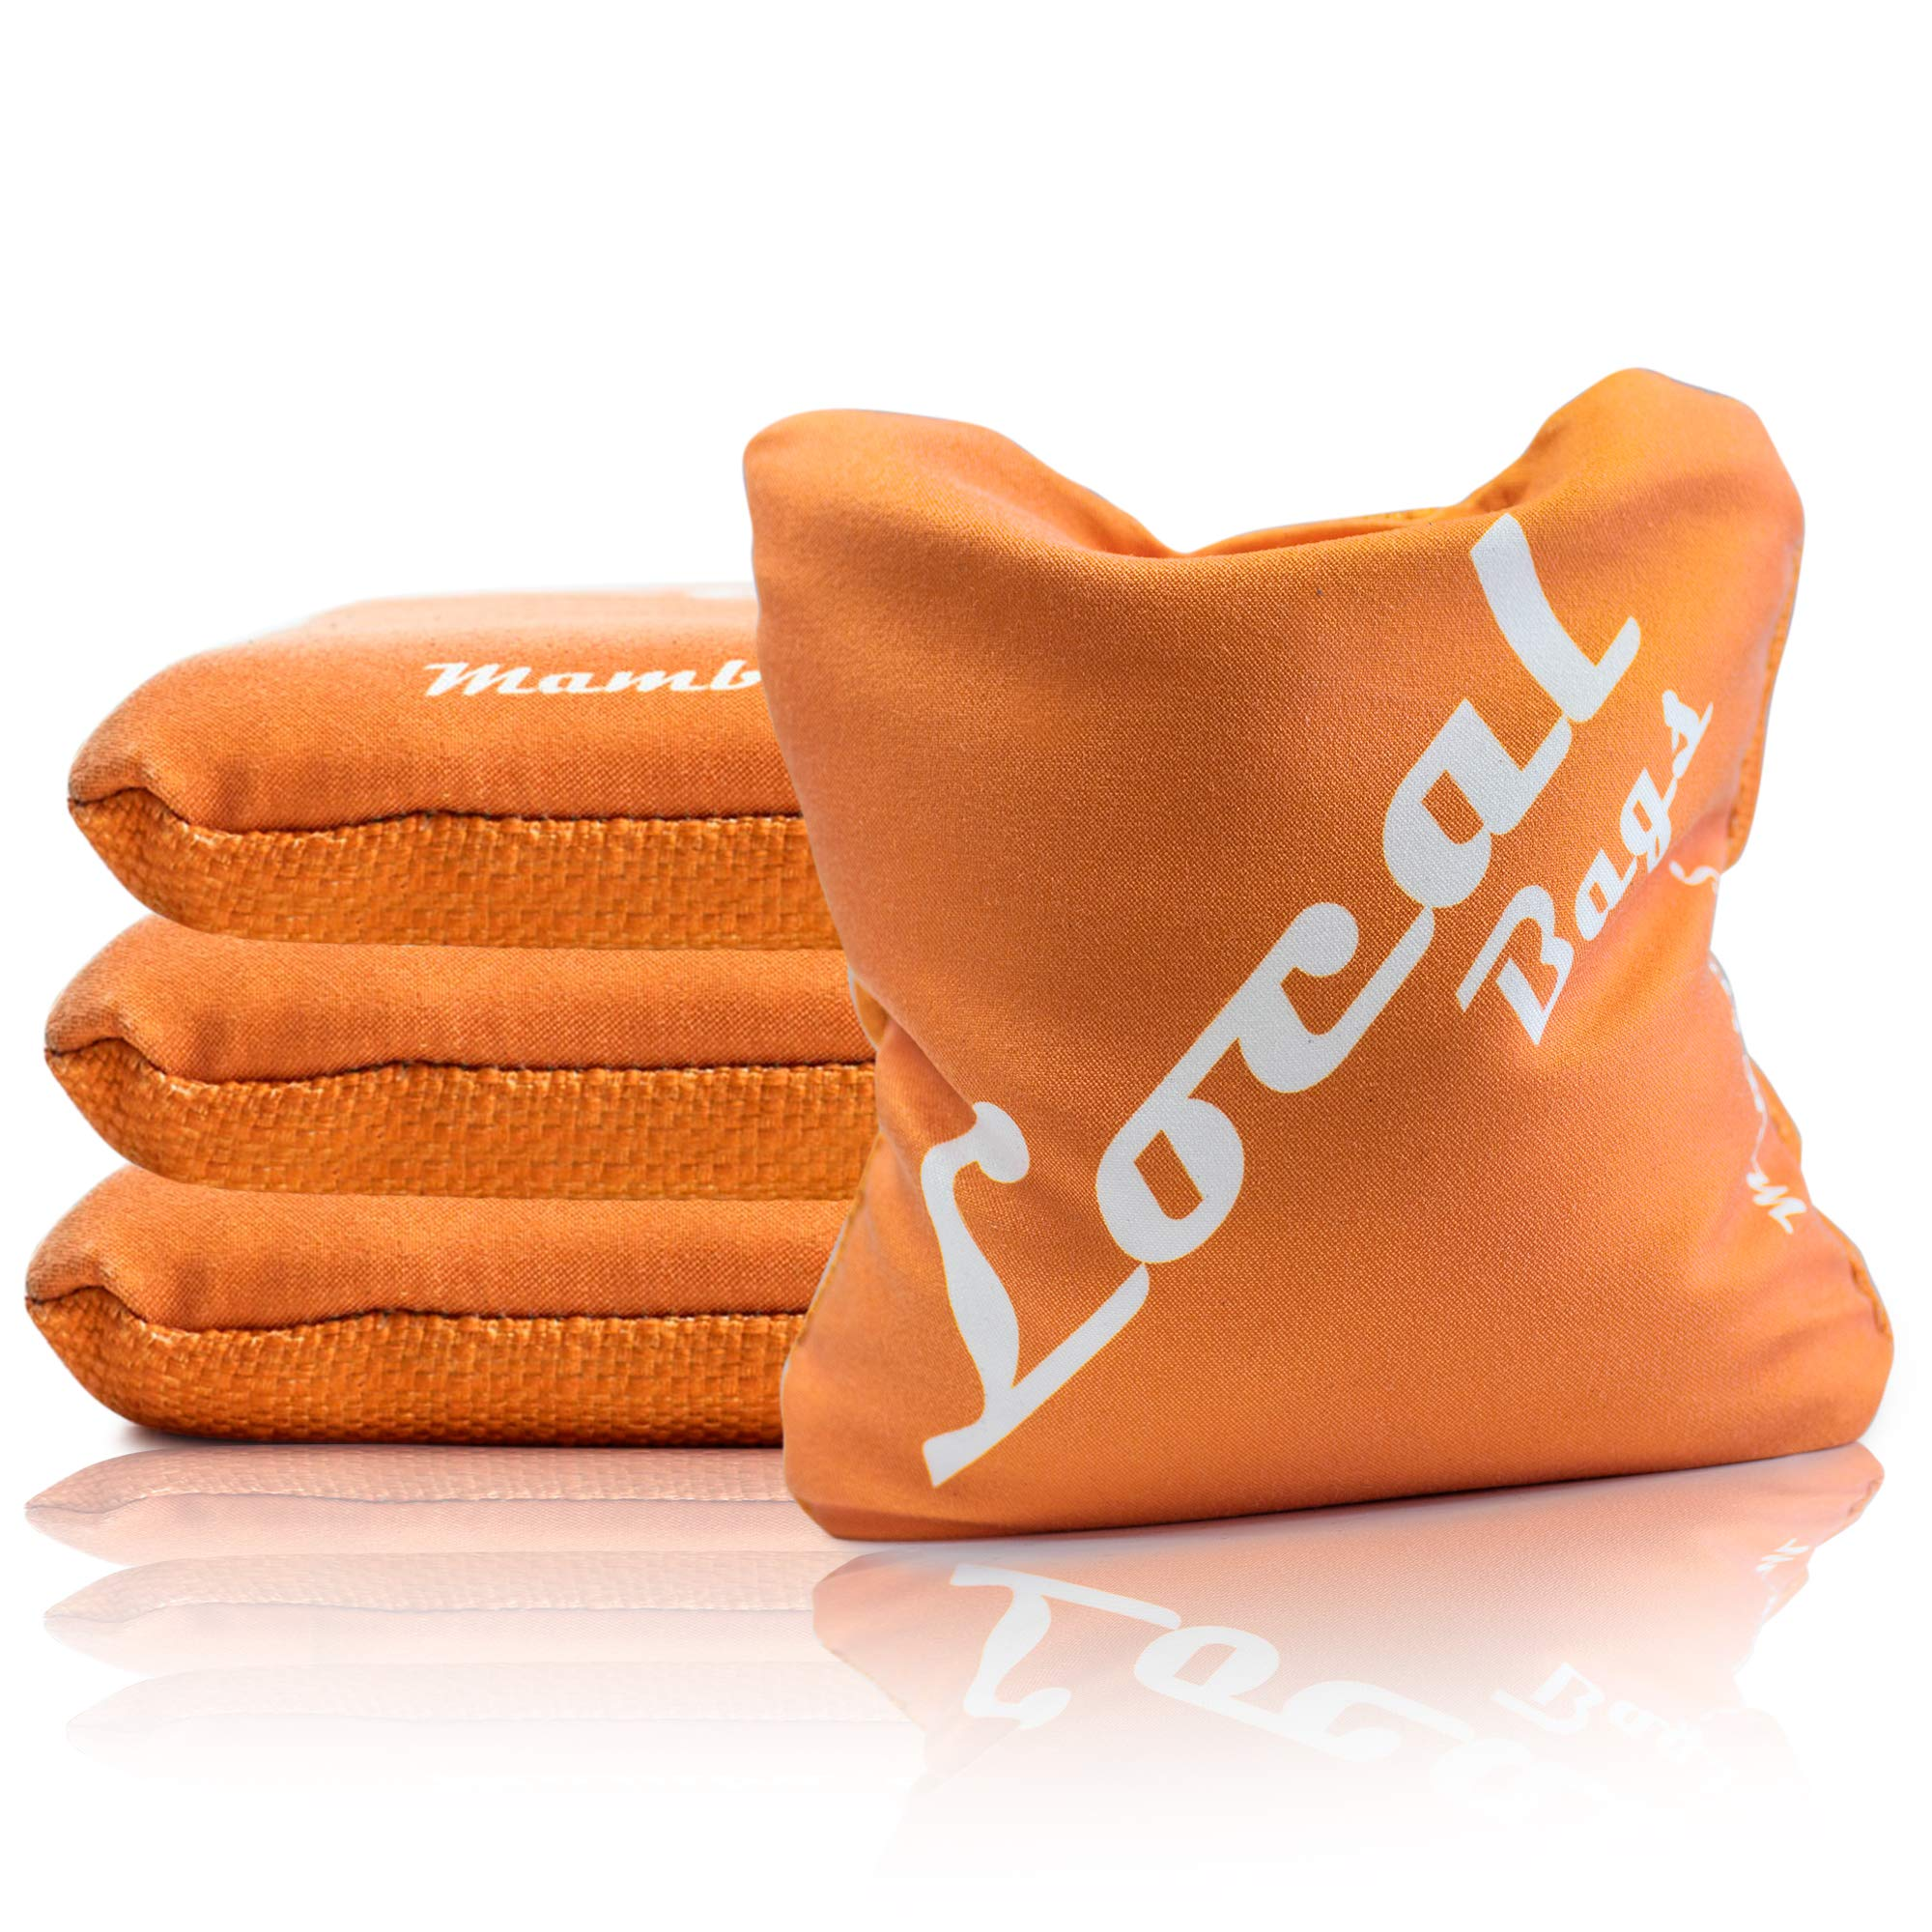 Local Bags Cornhole - Mamba S'' Series - Set of 4 Bags- ACL Approved Resin Filled - Double Sided - Smooth Side/Slick Side Made in USA (Orange) by Local Bags